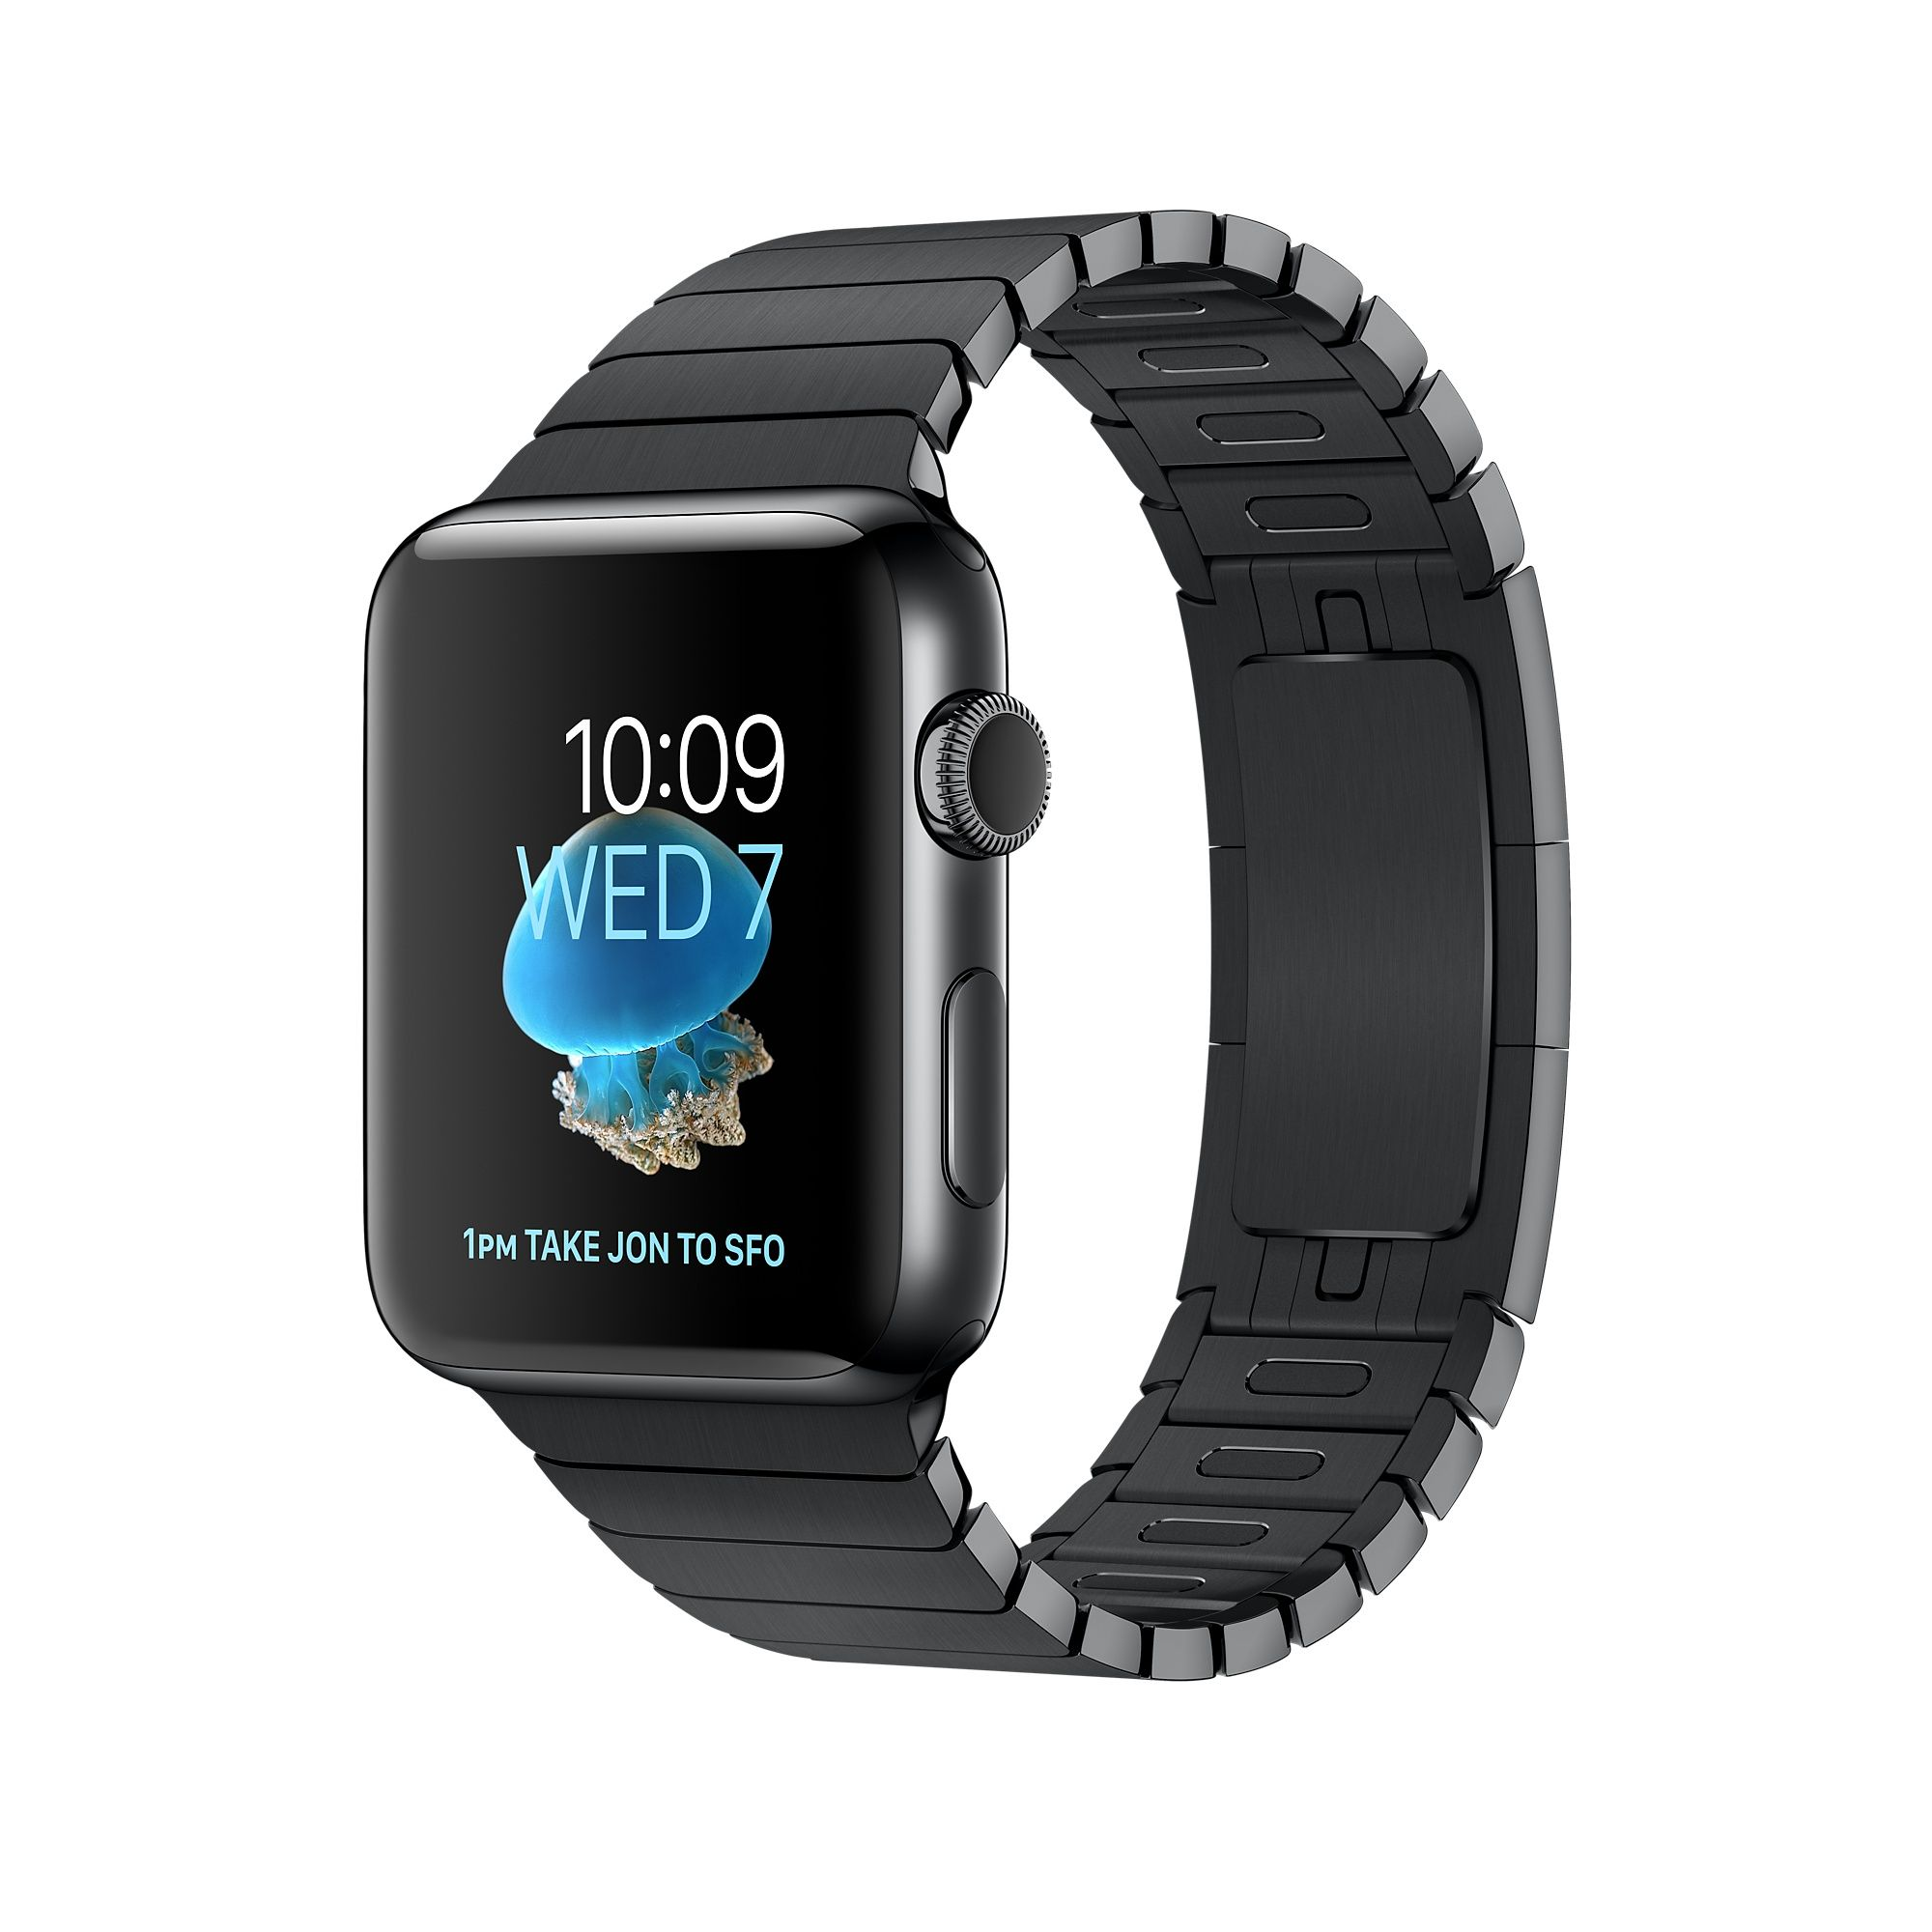 Introducing Apple Watch Series 2 Space Black Stainless Steel In 38mm Or 42mm With Built In Gps And Link Bracel Buy Apple Watch Apple Watch Series 2 Apple Watch